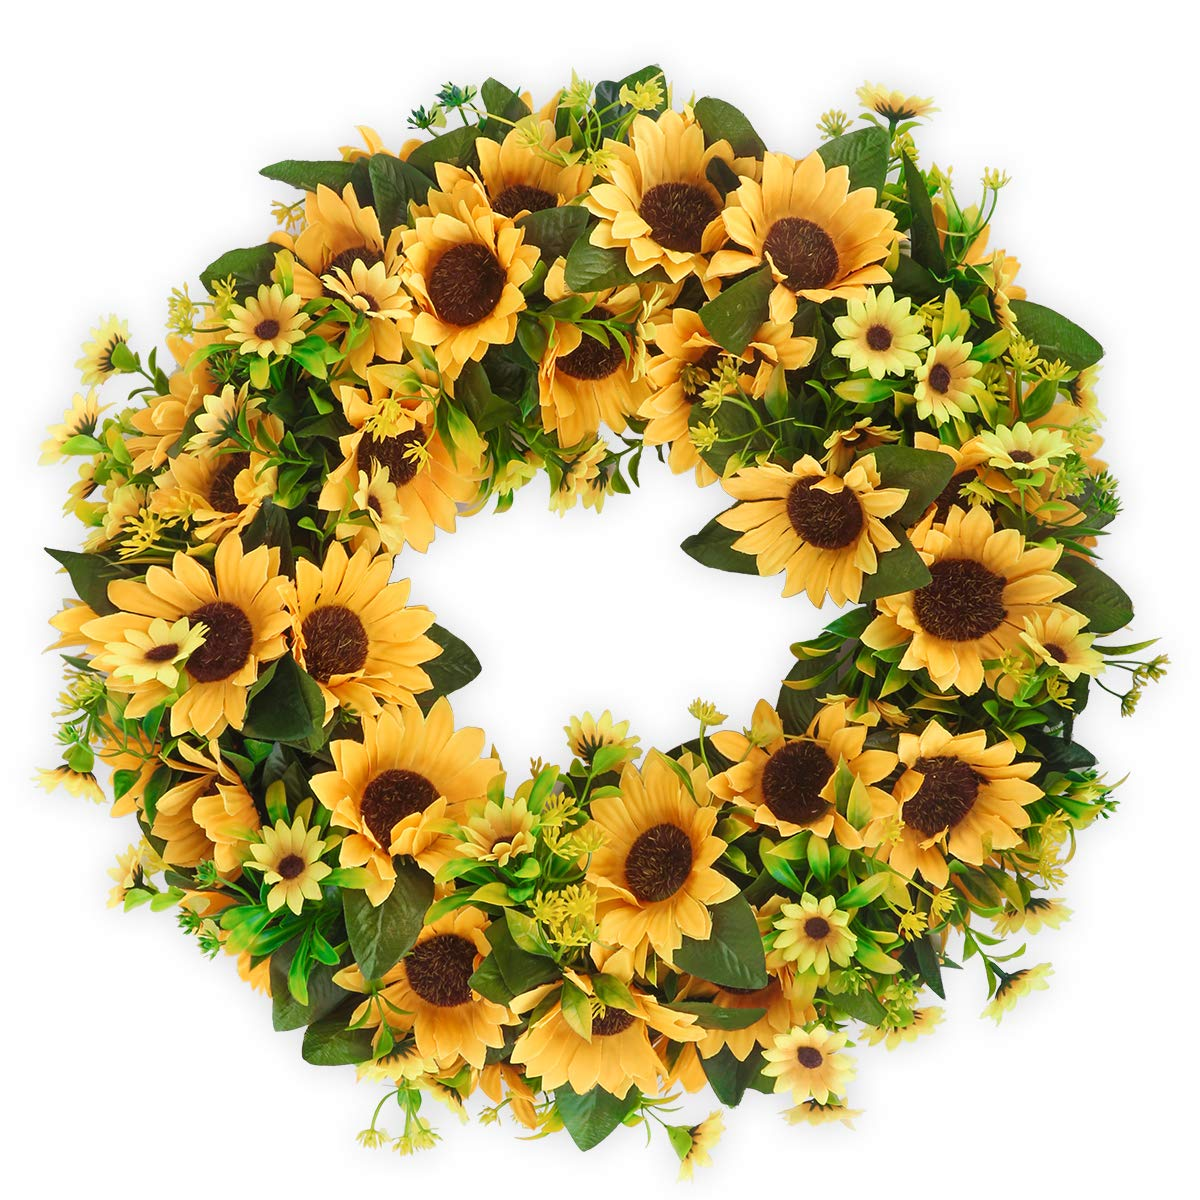 BOMAROLAN Artificial Sunflower Wreath 20 Inch Summer Fall Large Wreaths Springtime All Year Around Flower Green Leaves for Outdoor Front Door Indoor Wall Or Window Décor by BOMAROLAN